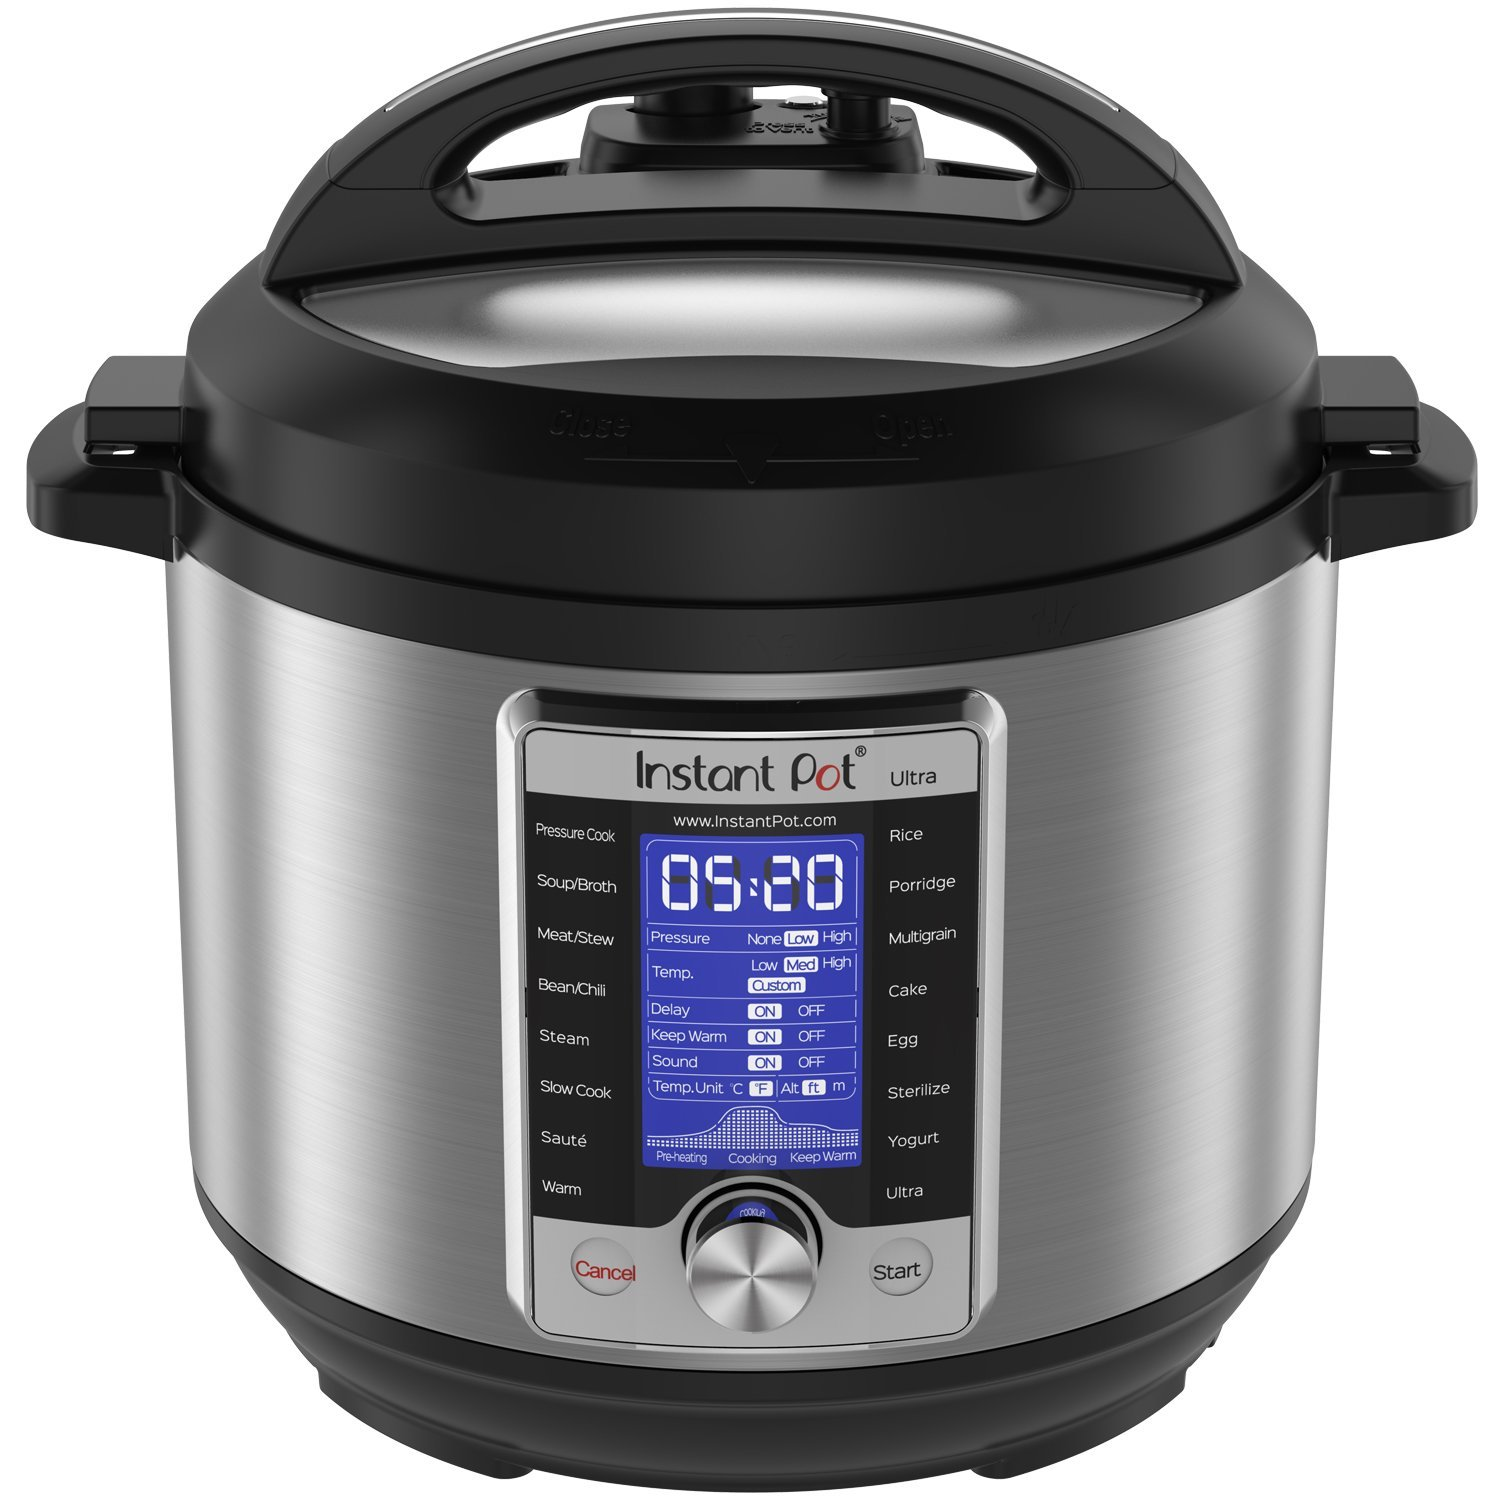 Instant Pot Ultra 6 Qt 10-in-1 Multi- Use Programmable (Instapot)